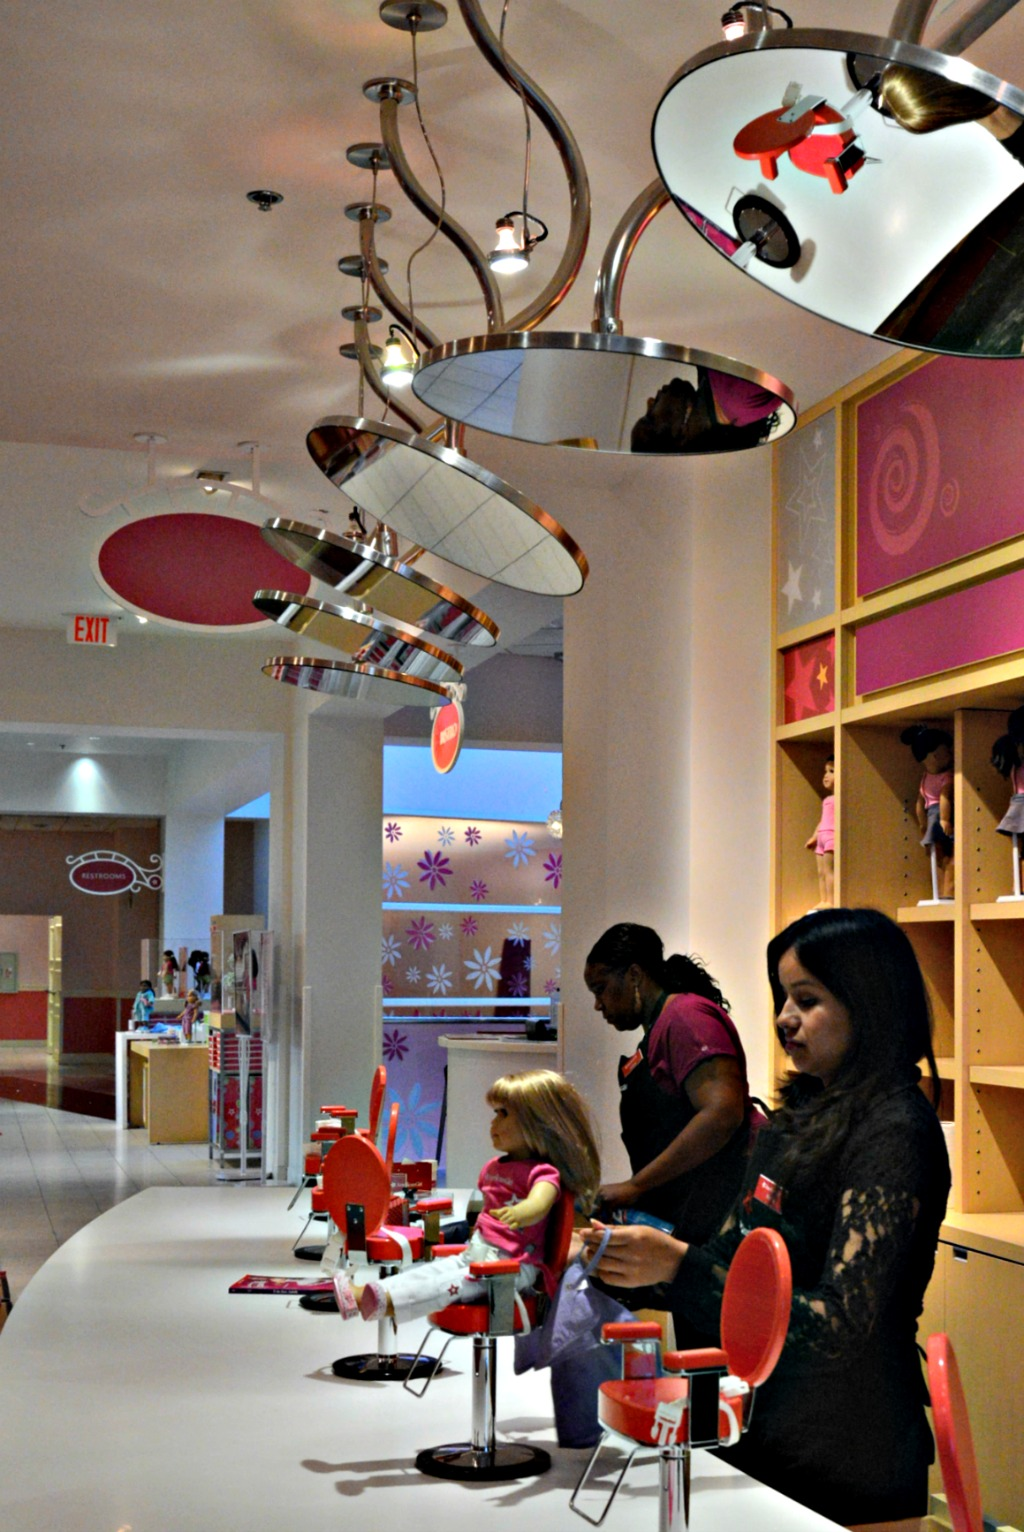 American Girl Doll Store Dallas Jennifer Mccollum-9091